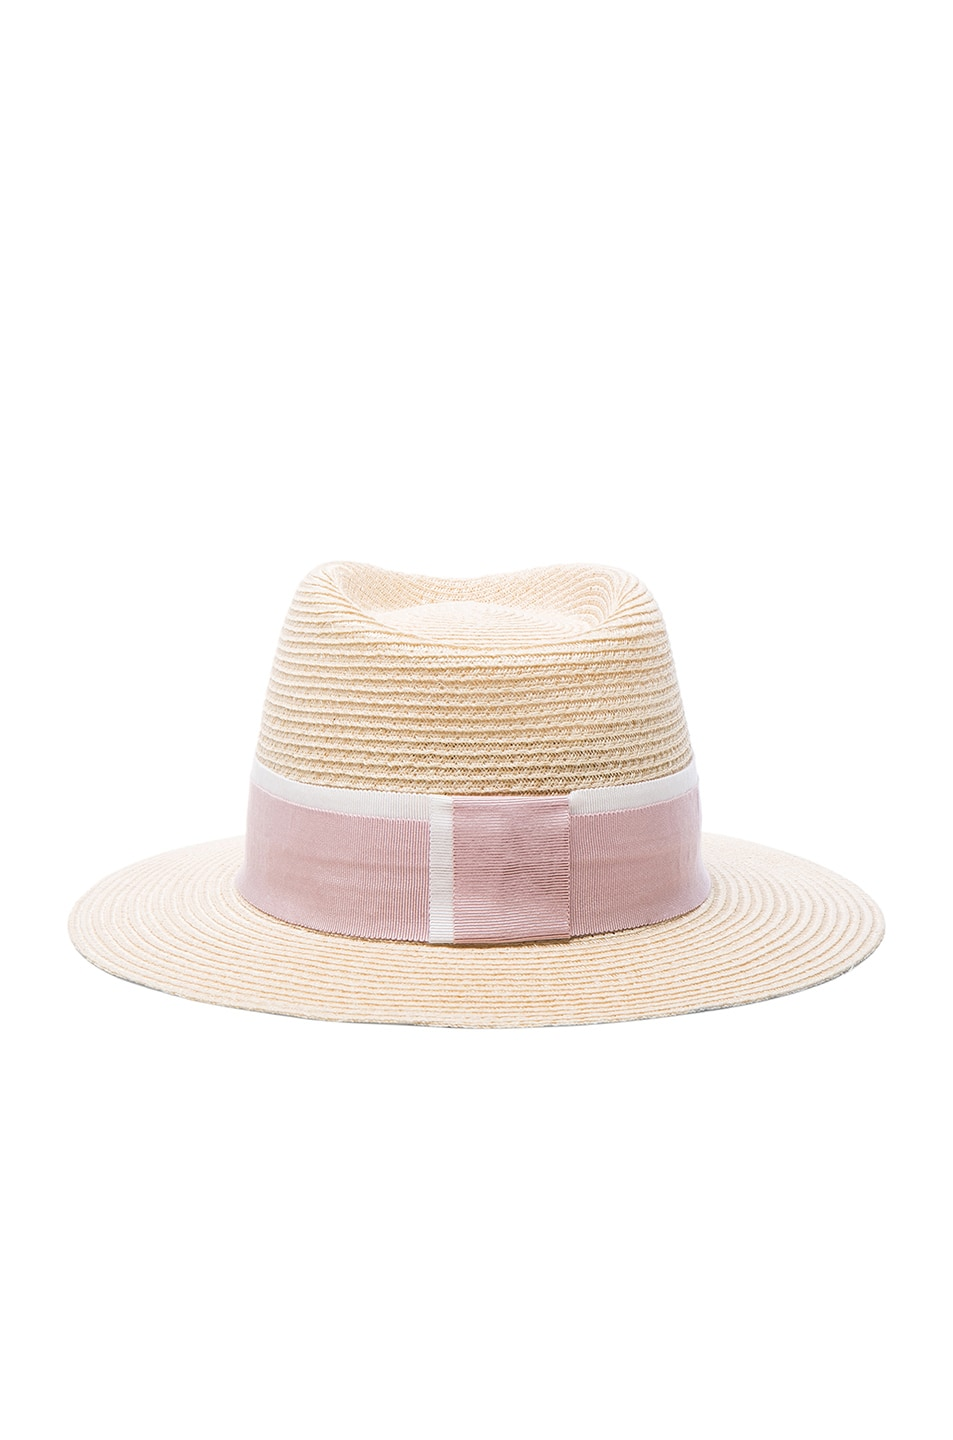 Image 4 of Maison Michel Andre Straw Hat in Natural Pink 7b2ff6db20a